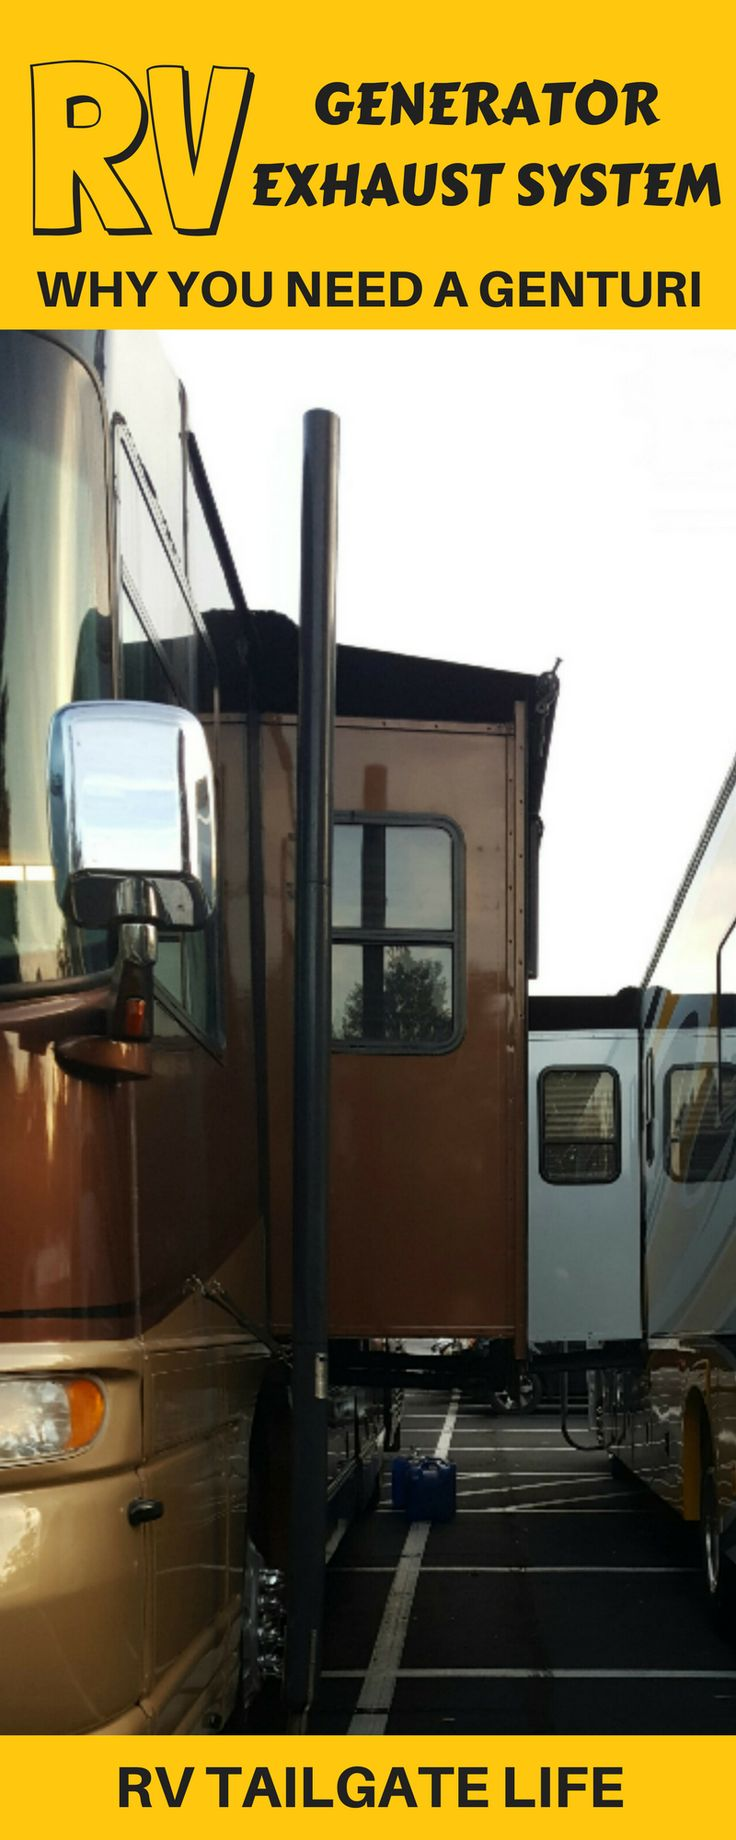 1000 Ideas About 5th Wheel Travel Trailers On Pinterest Auto Harness Wire Clarion Rdx555d Images Rv Living And Lifestyle